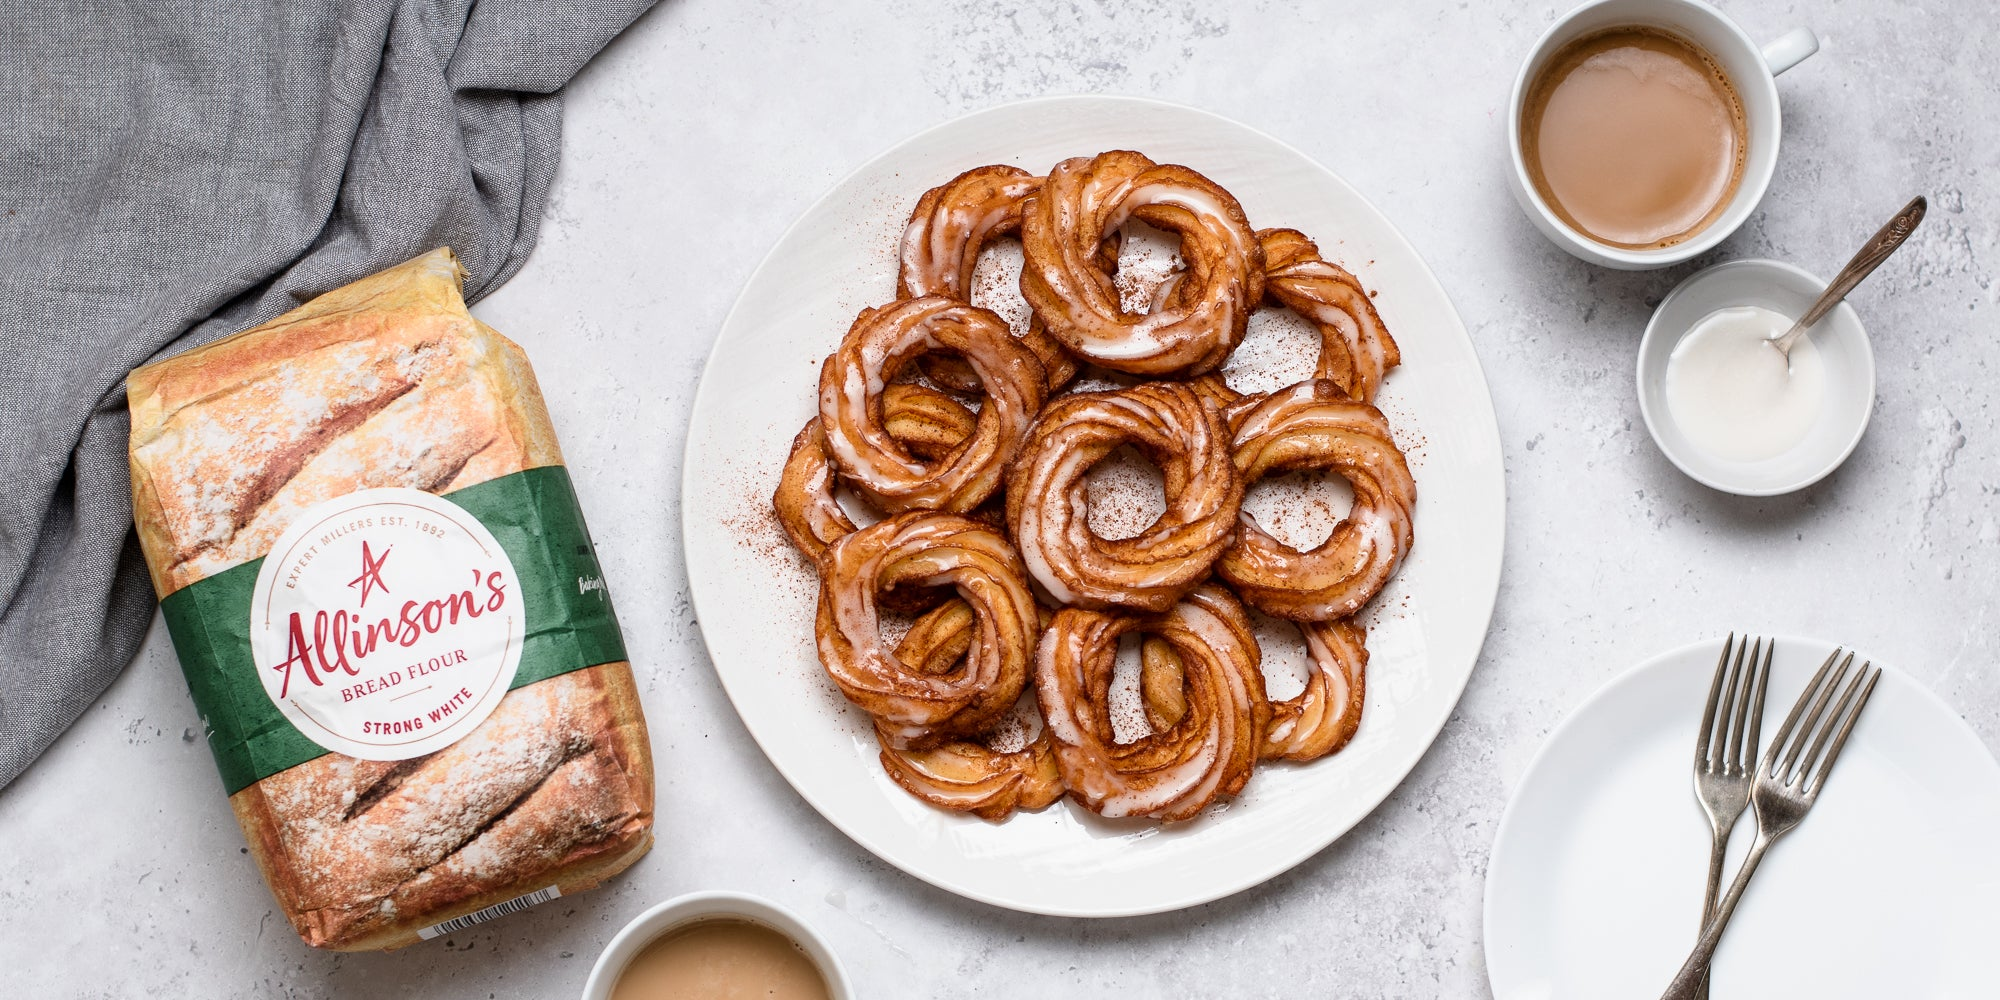 Apple Cider Crullers on a plate, next to a bag of Allinson's Strong White Flour, topped with icing.